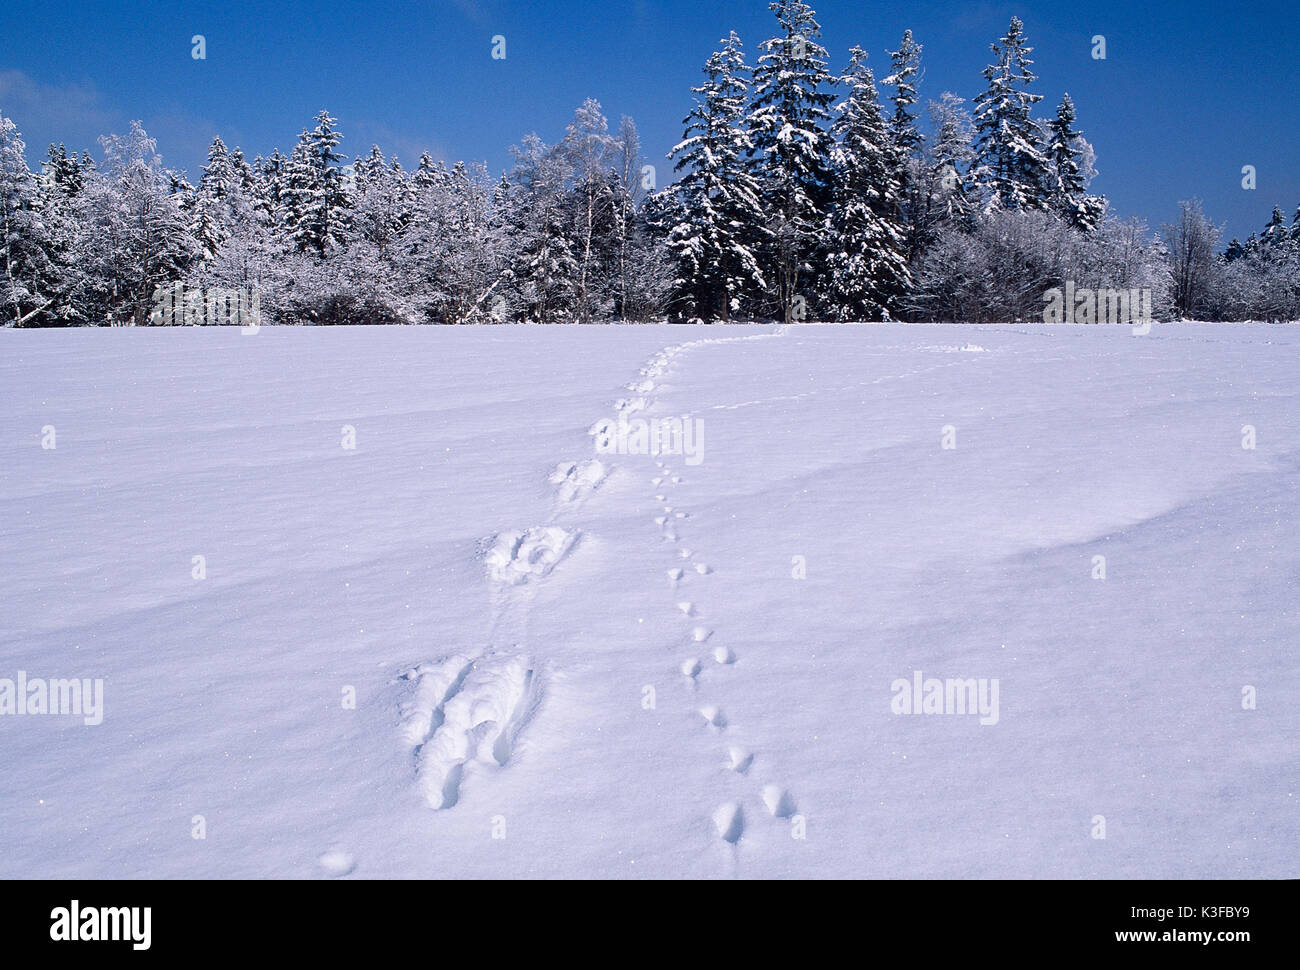 Animal tracks at the snow - Stock Image